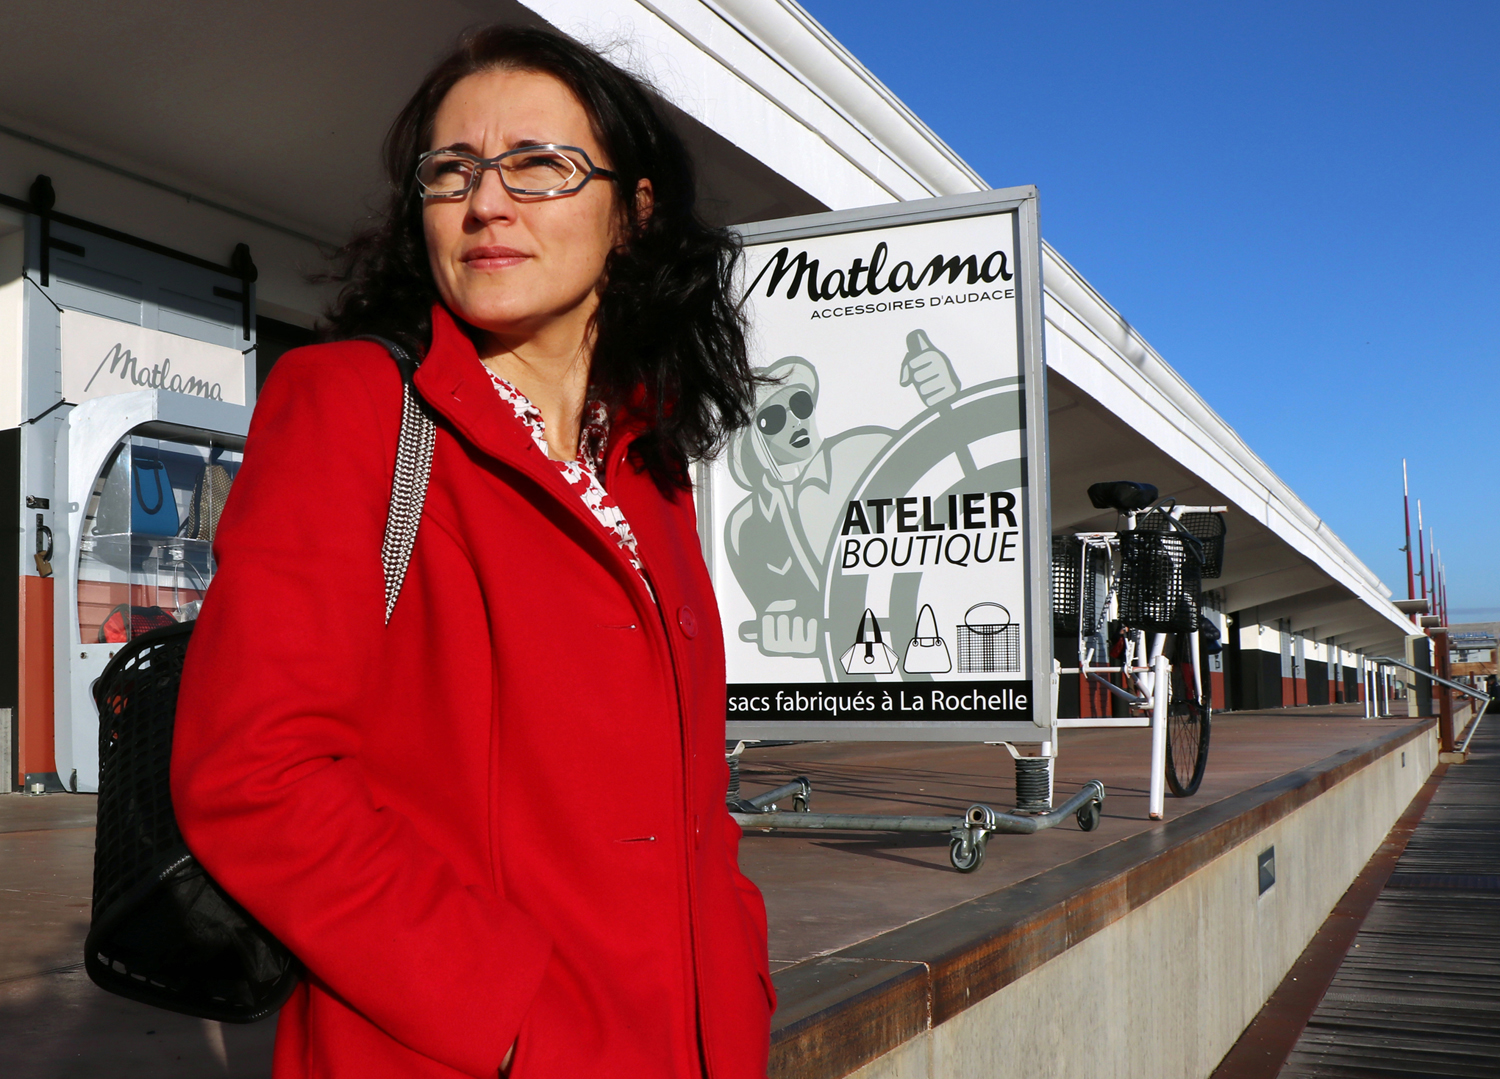 Marina face à sa boutique